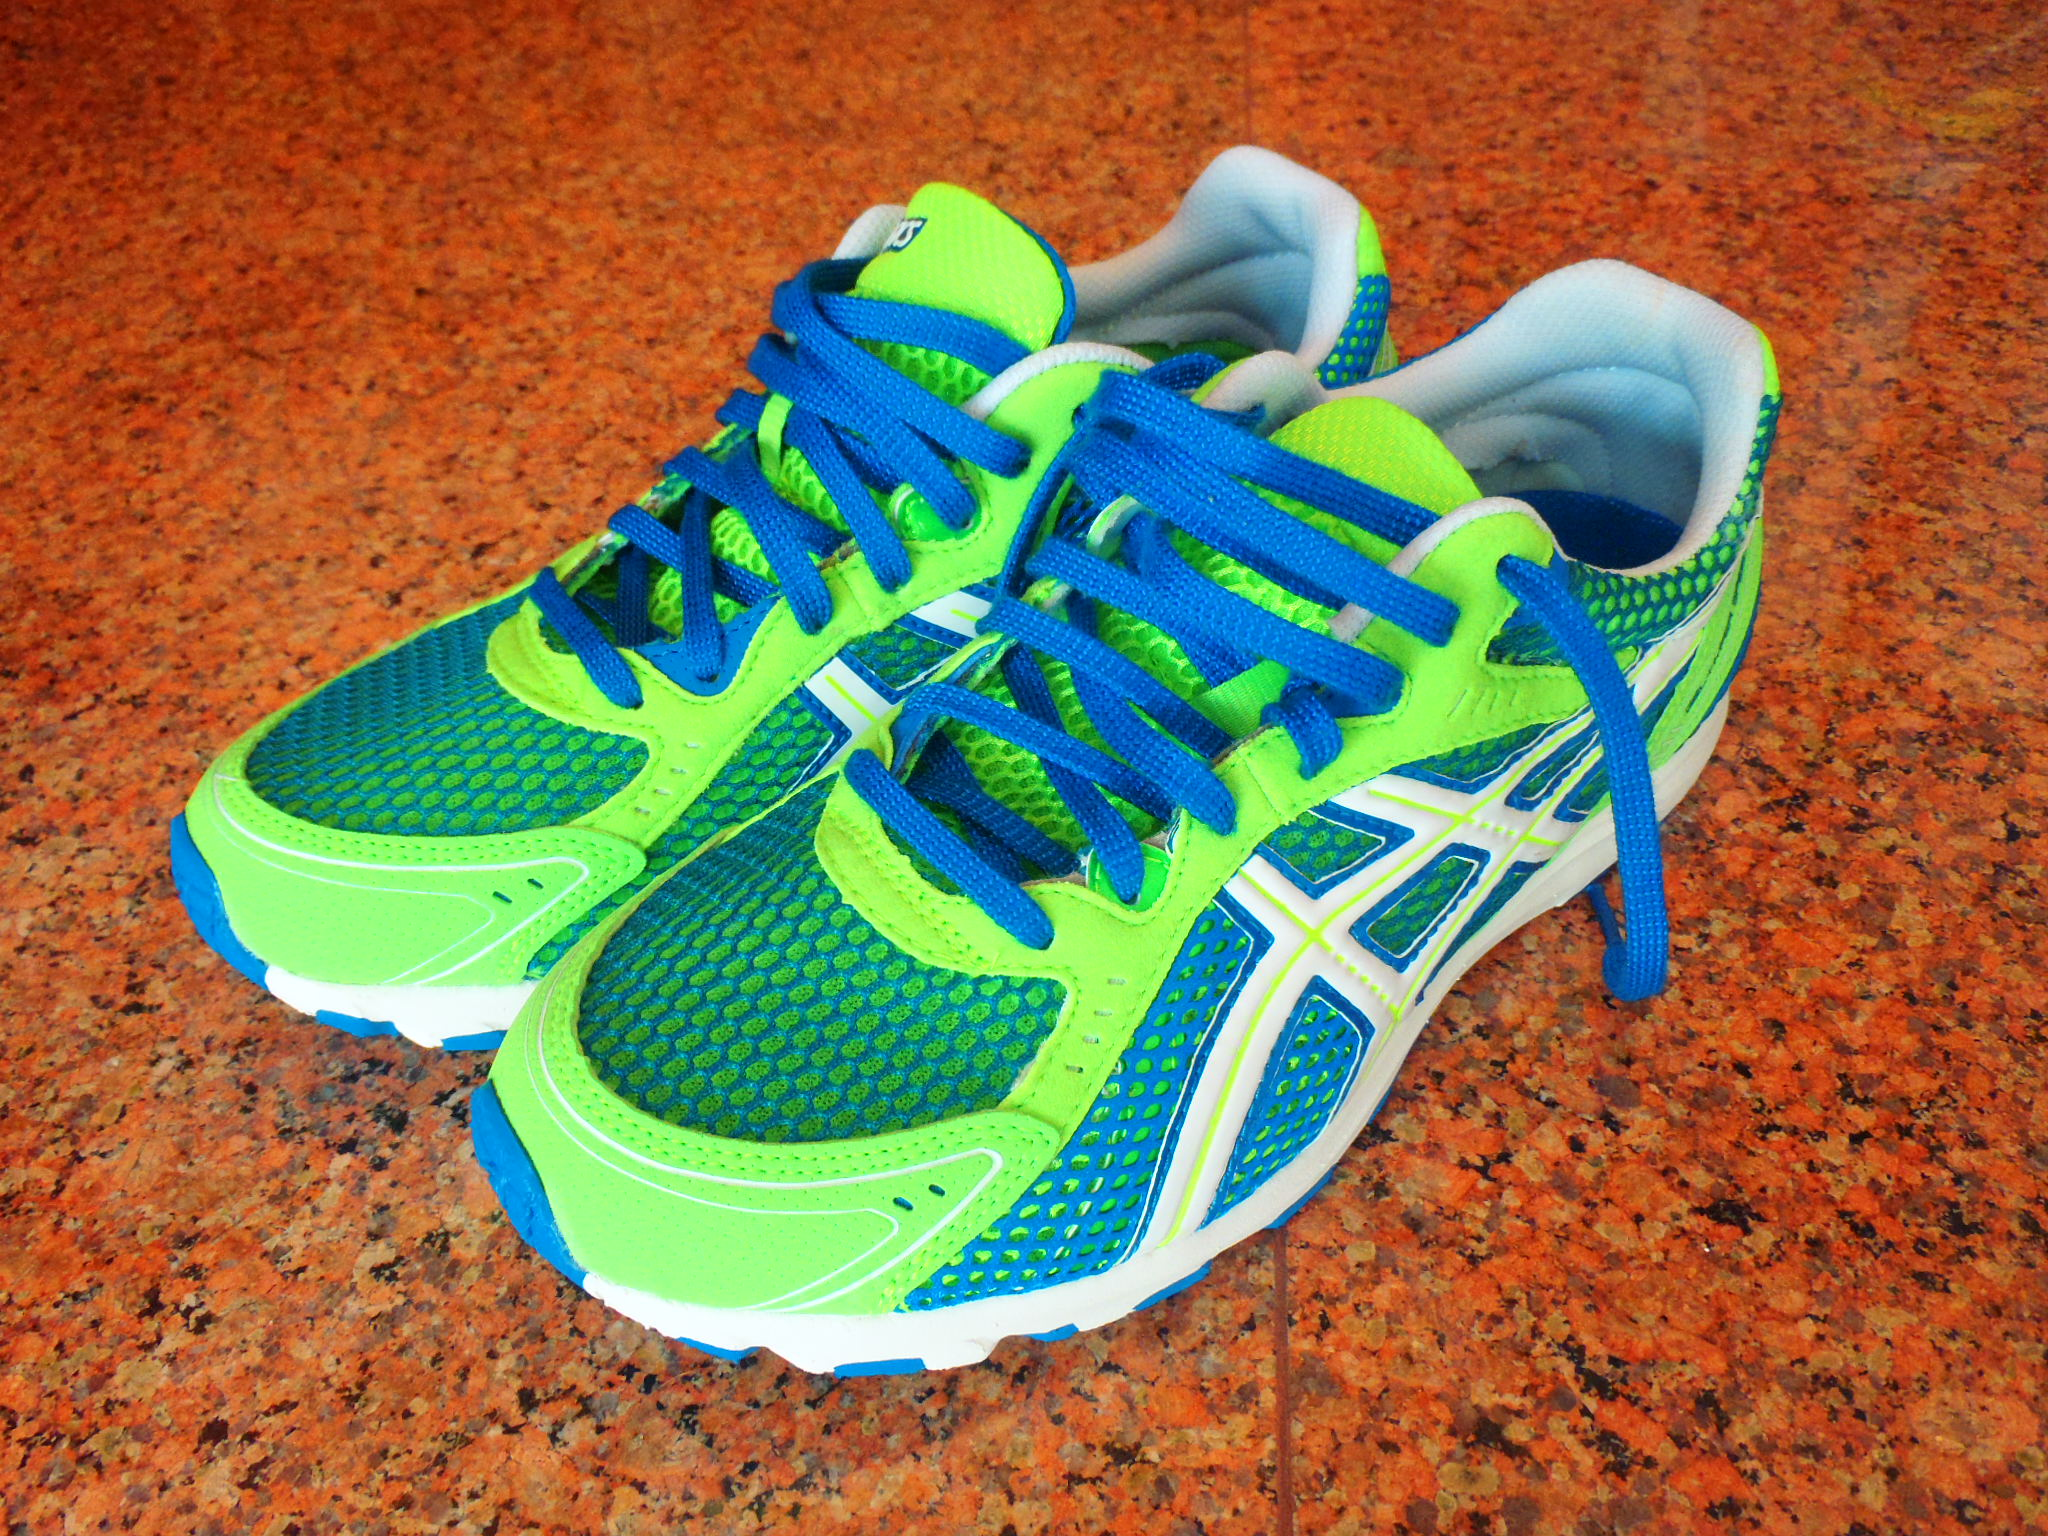 5 Minute Review – Asics Hyper Speed 5 | TRG